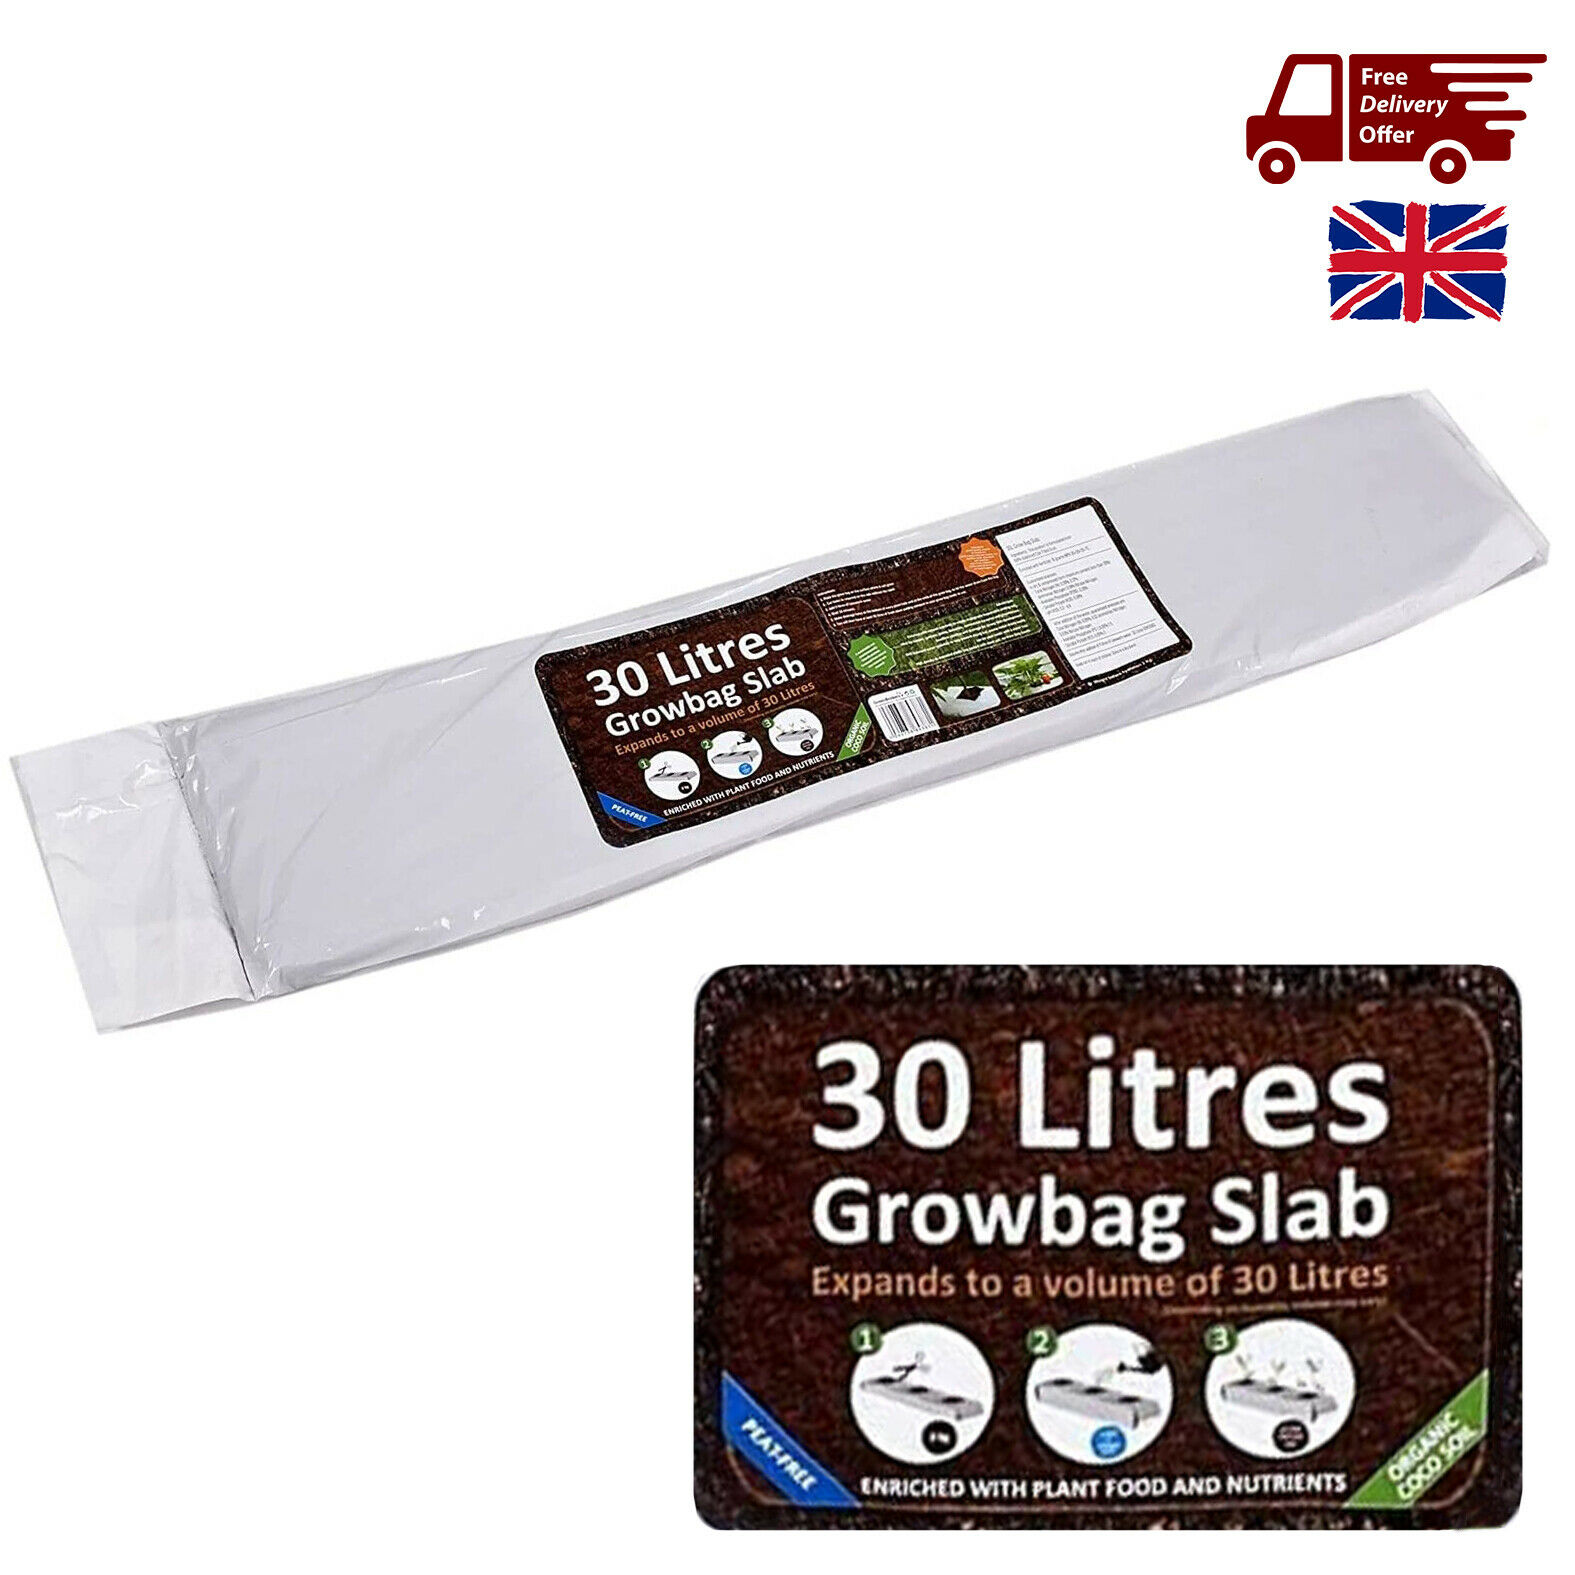 30L Organic Growbag Slab Compost Potting Soil Peat Free Expanded Holes Outdoor